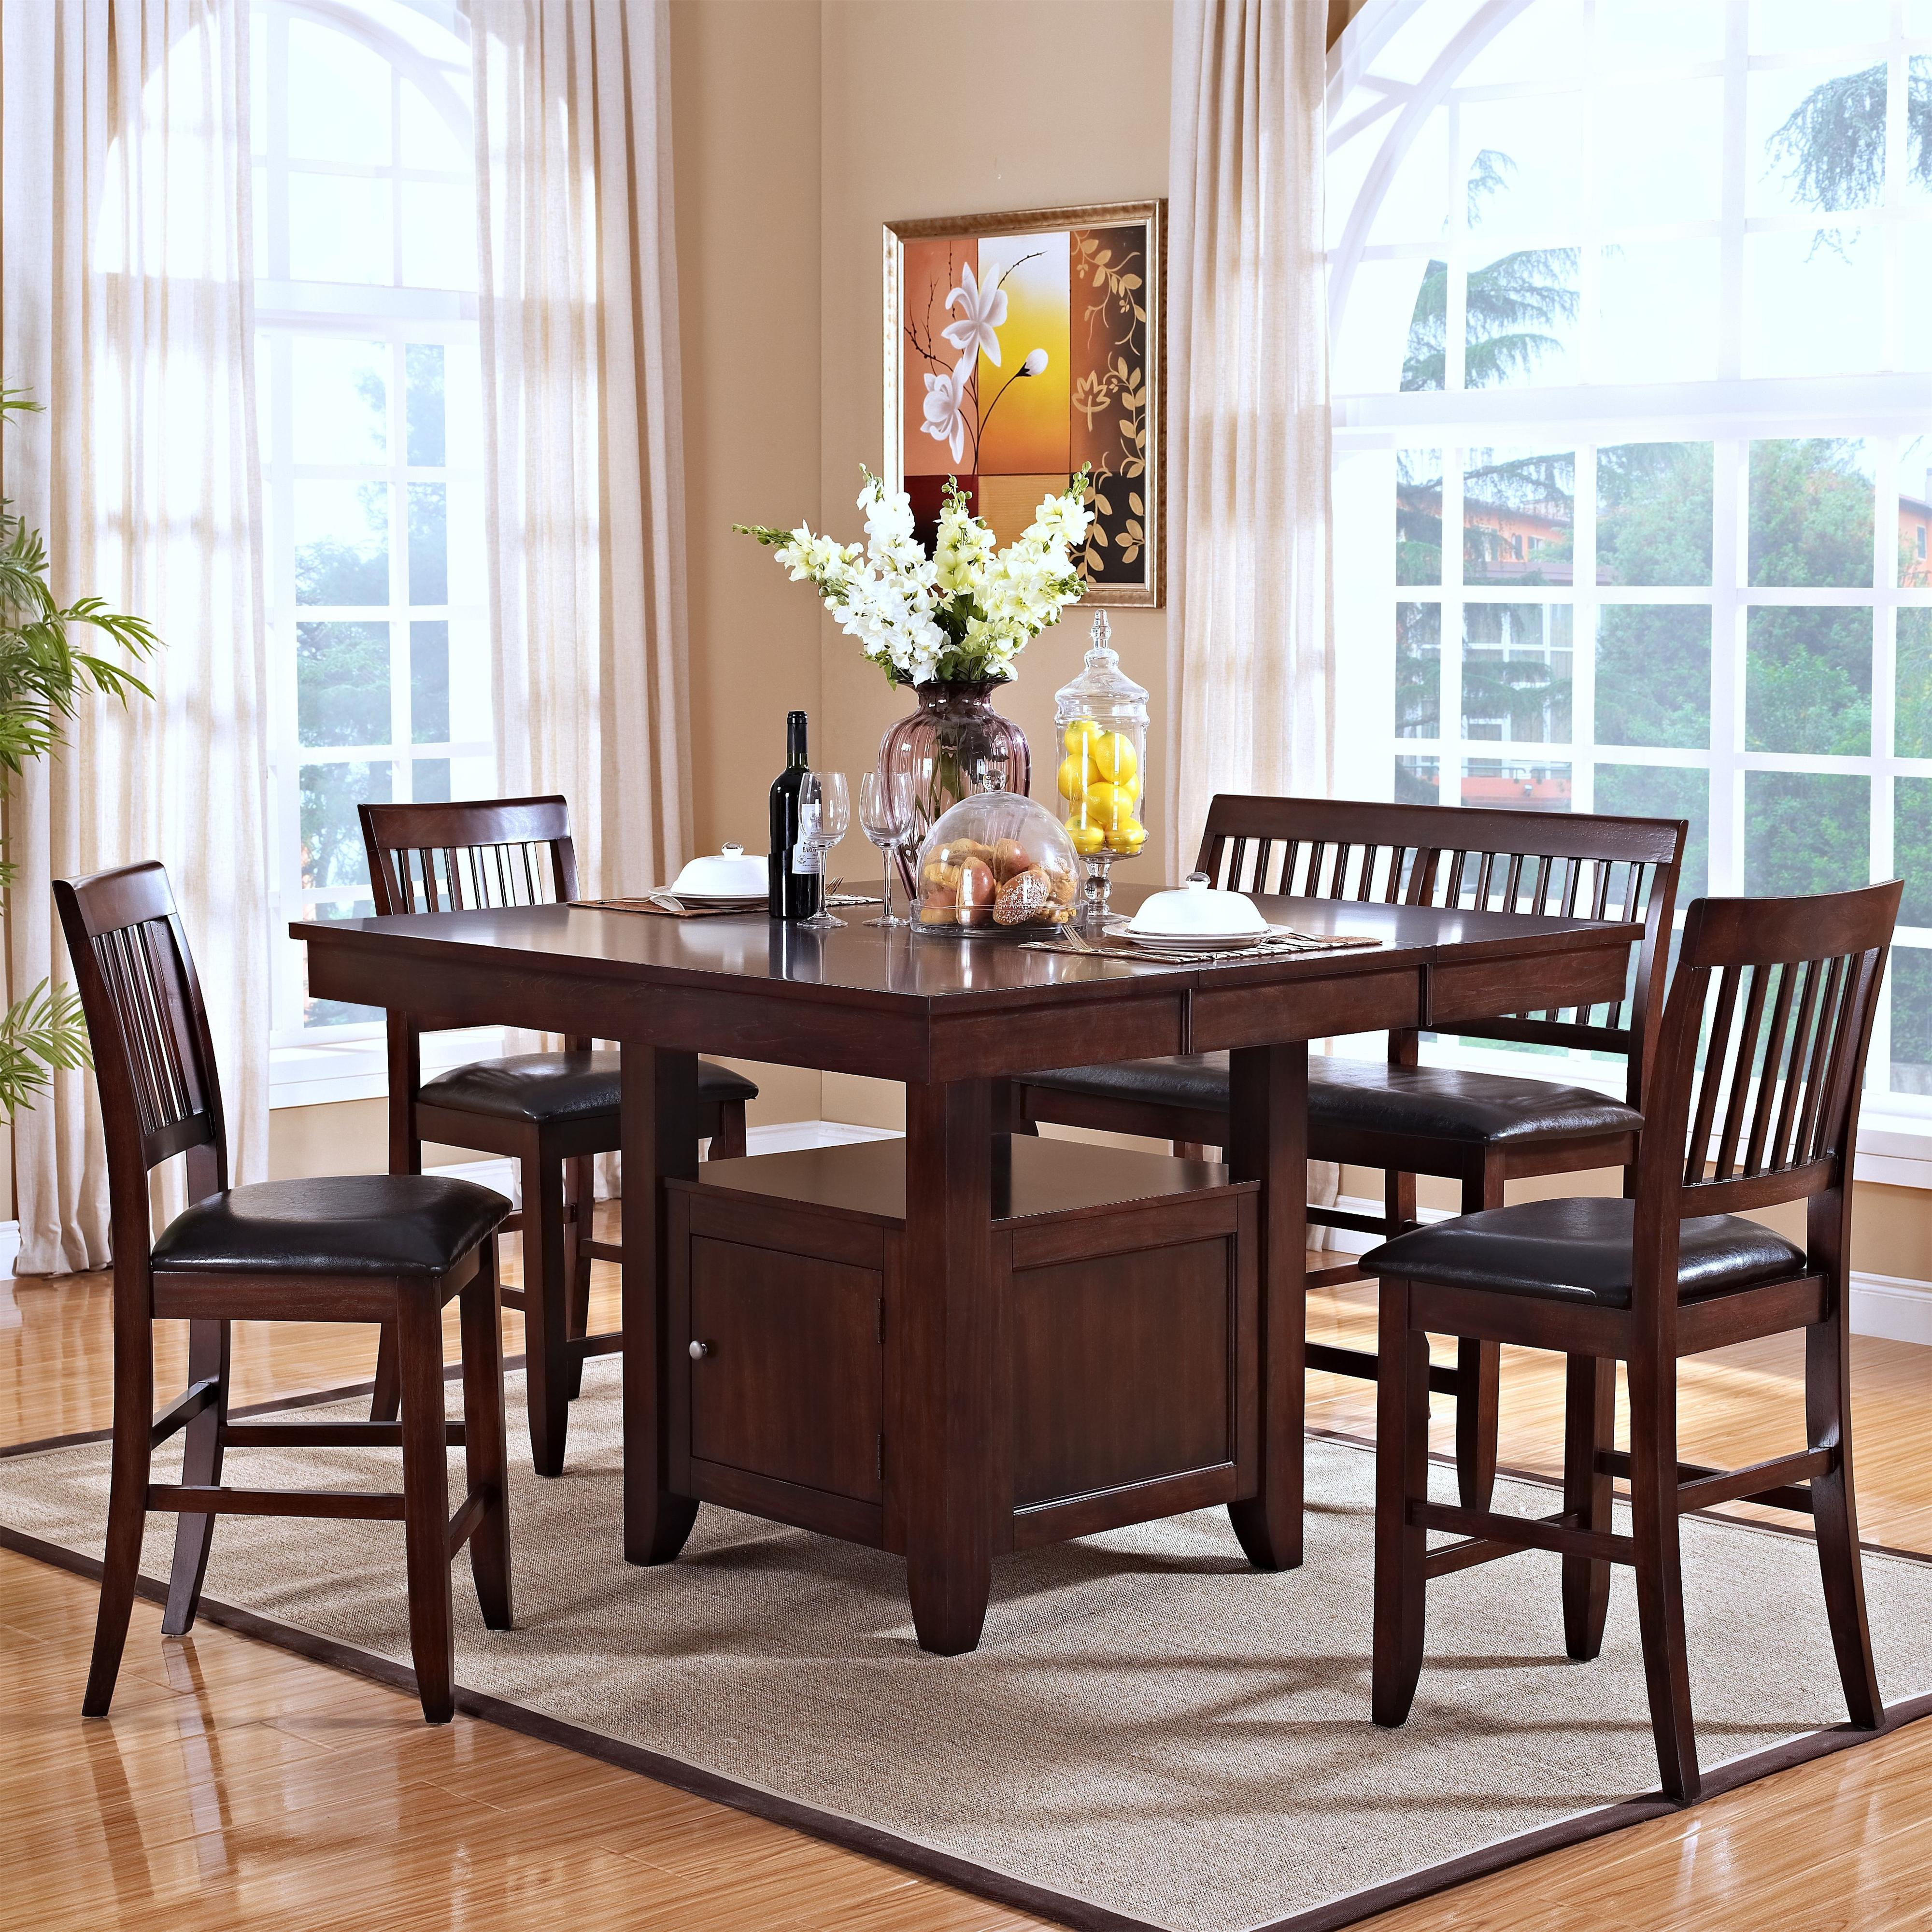 New Classic Kaylee 5 Piece Table Set - Item Number: 45-101-10+B+3x20+25